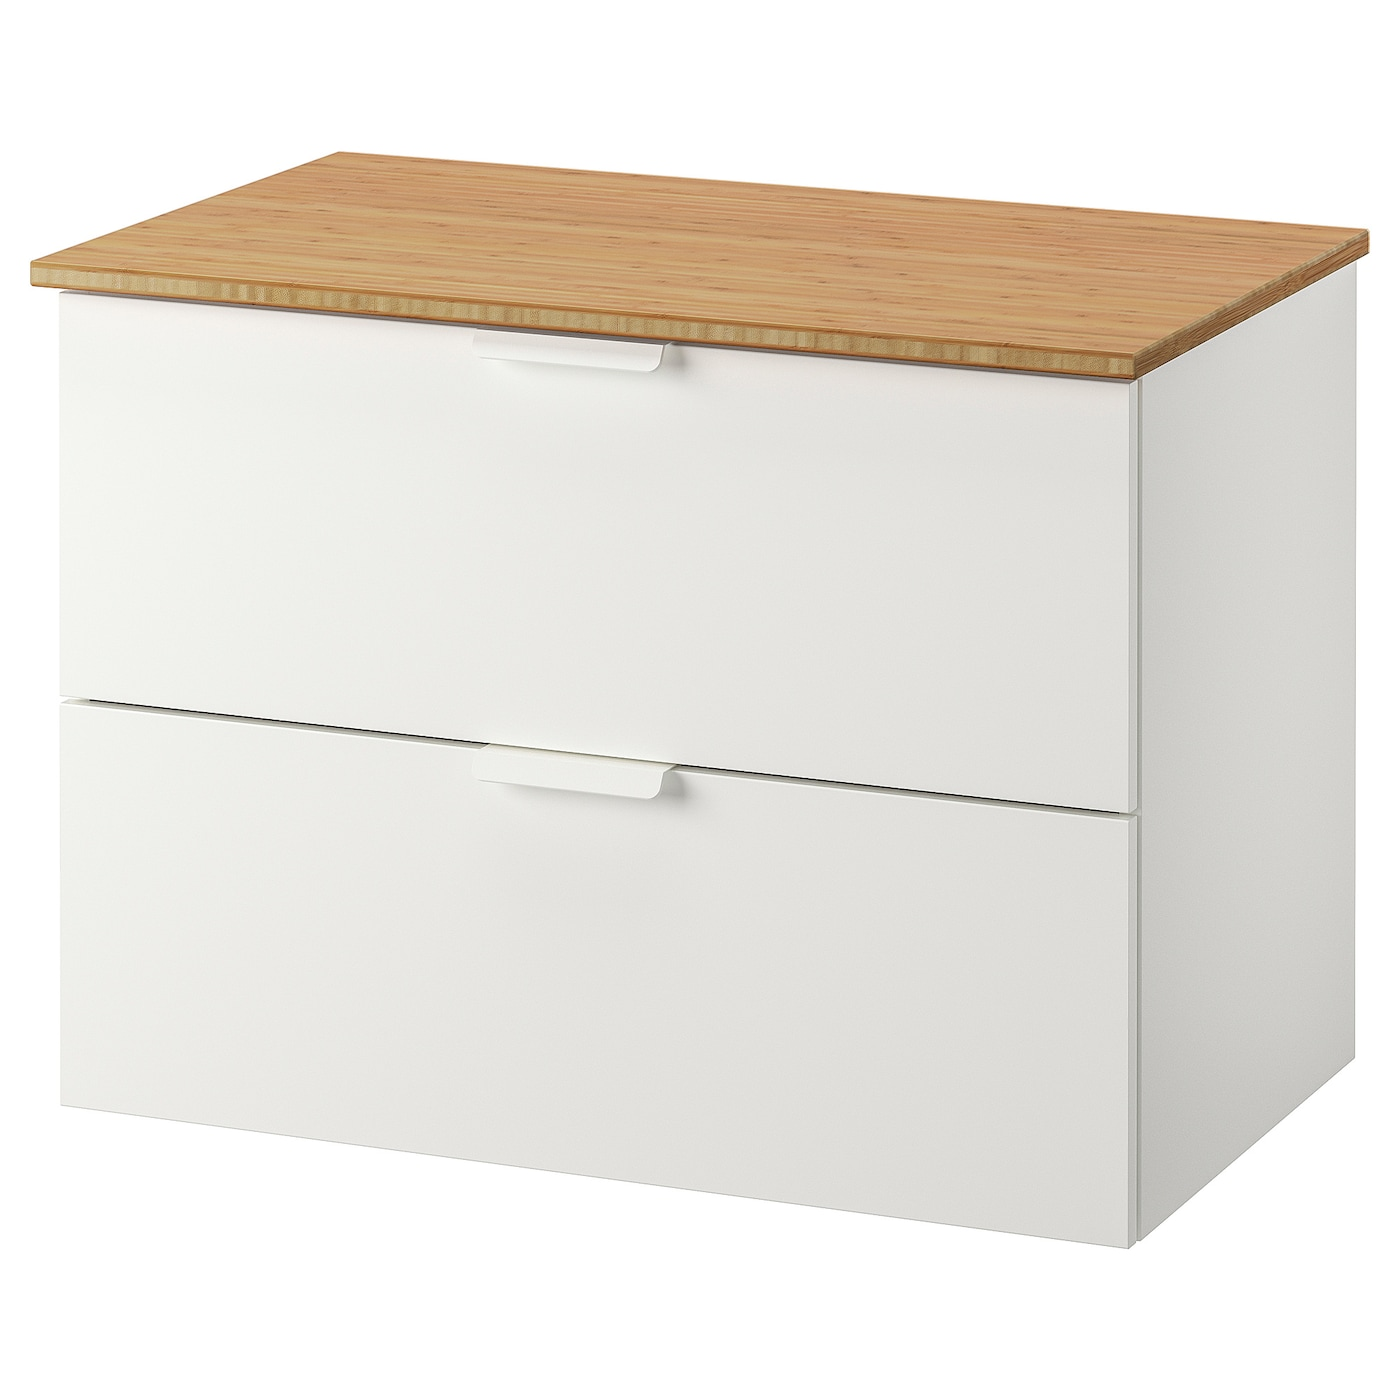 Wash Stand With 2 Drawers Godmorgon Tolken White Bamboo